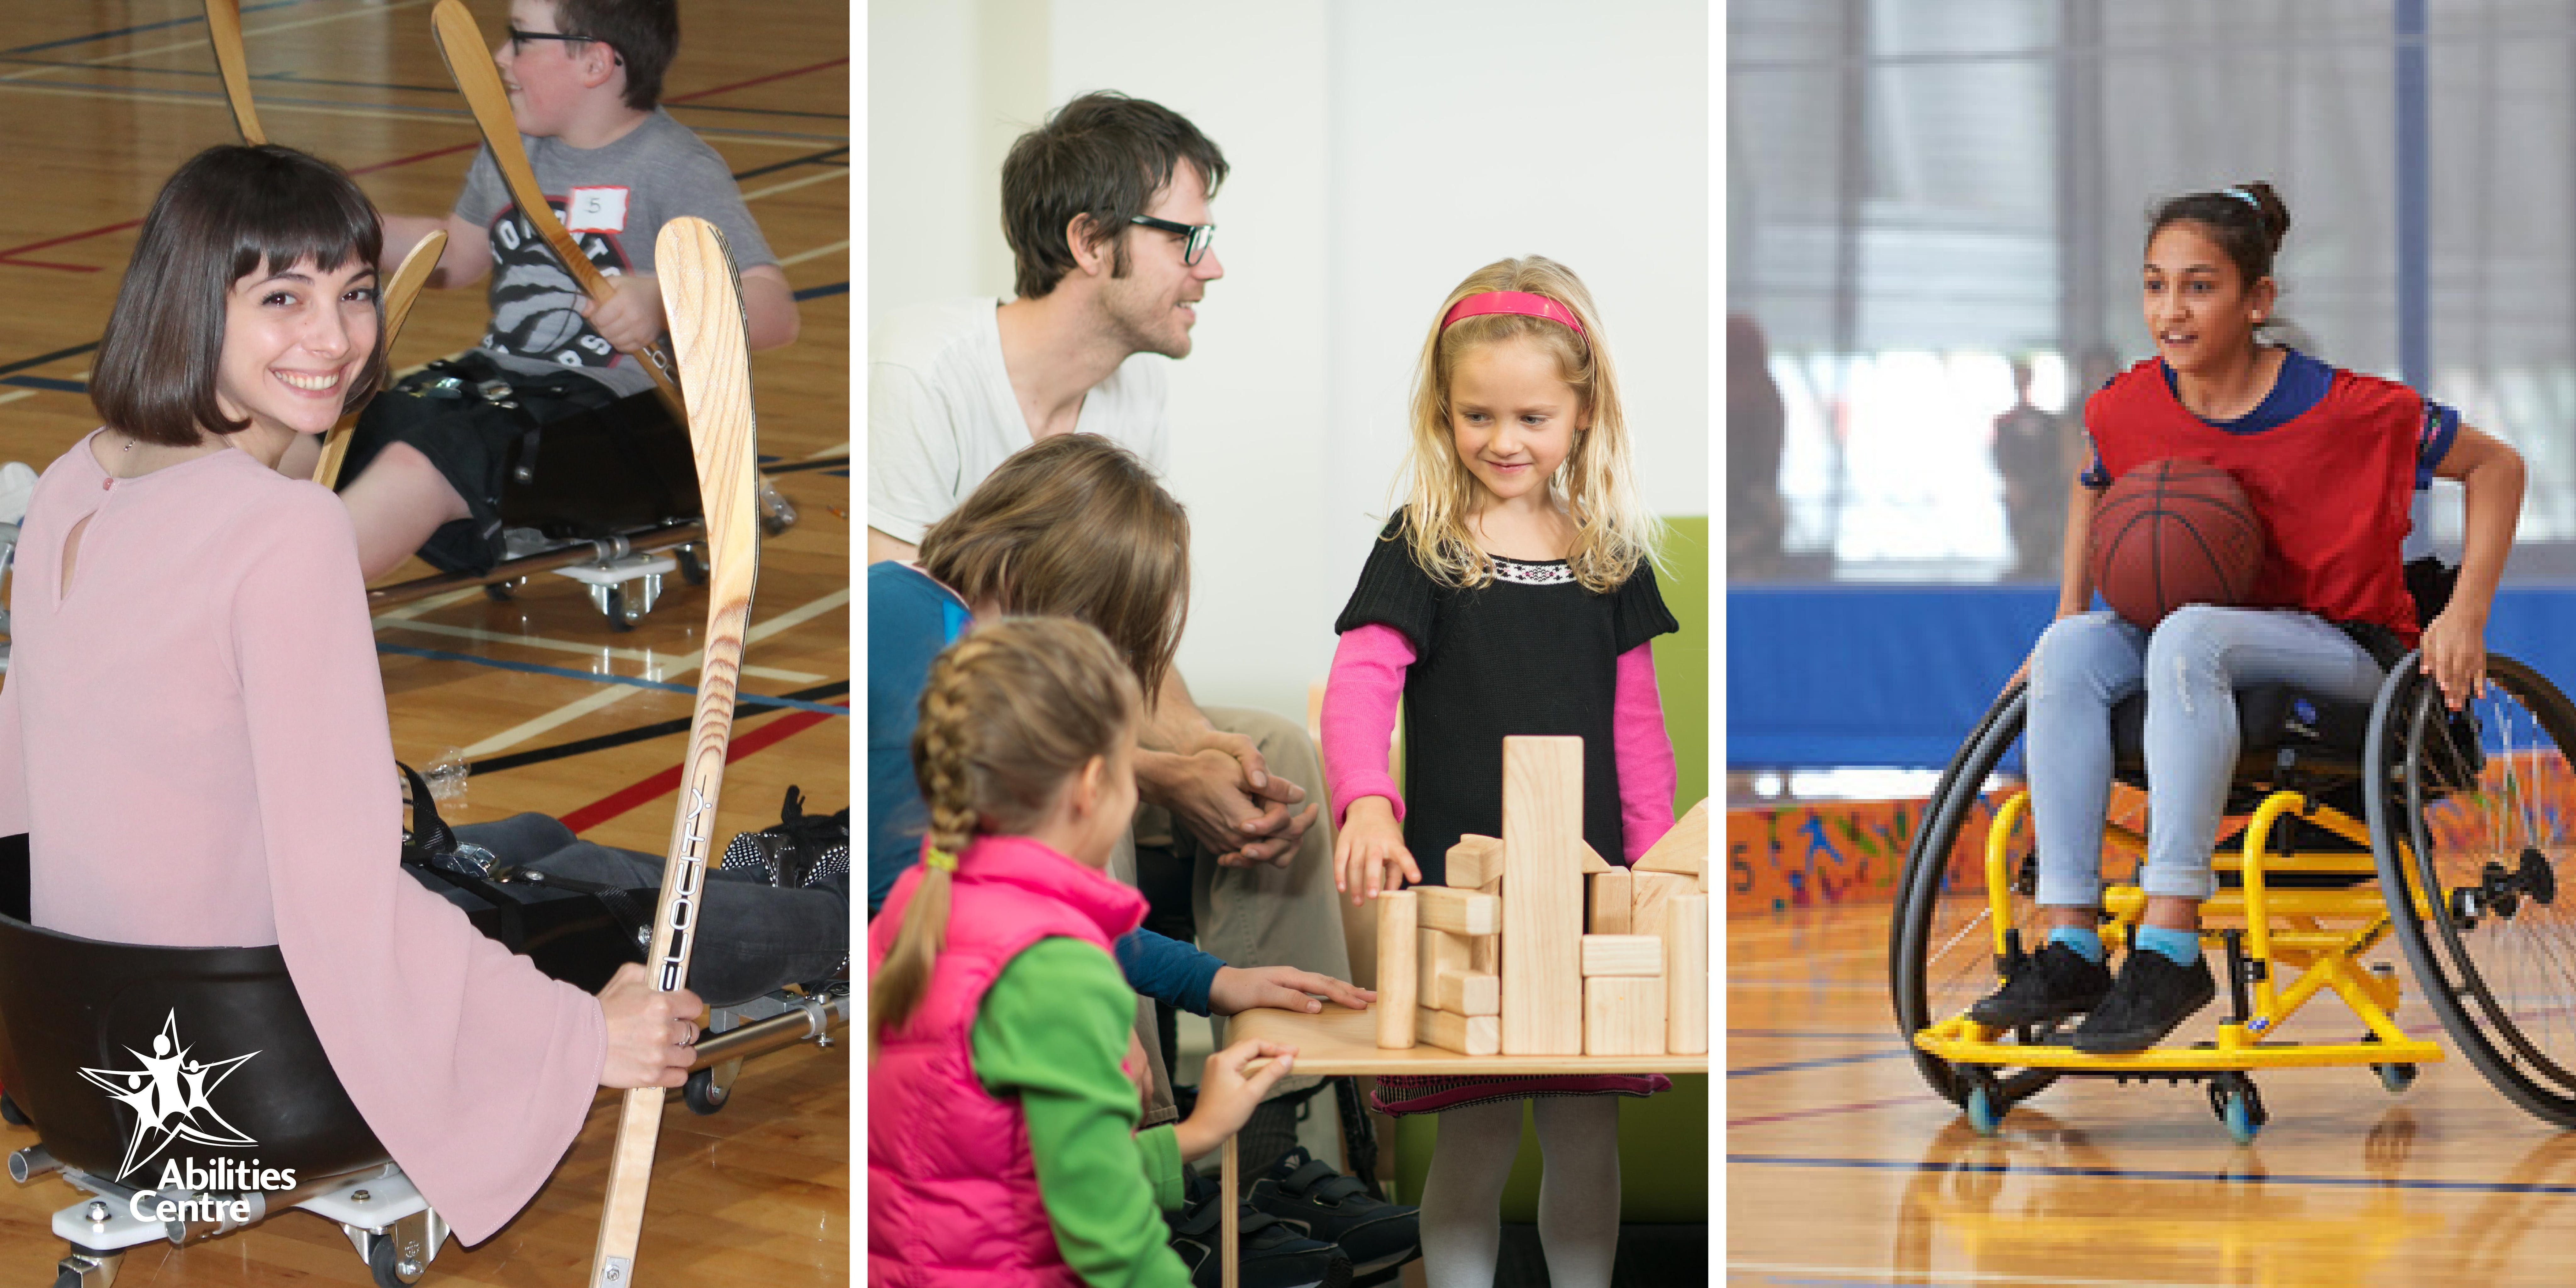 Family Day at Abilities Centre